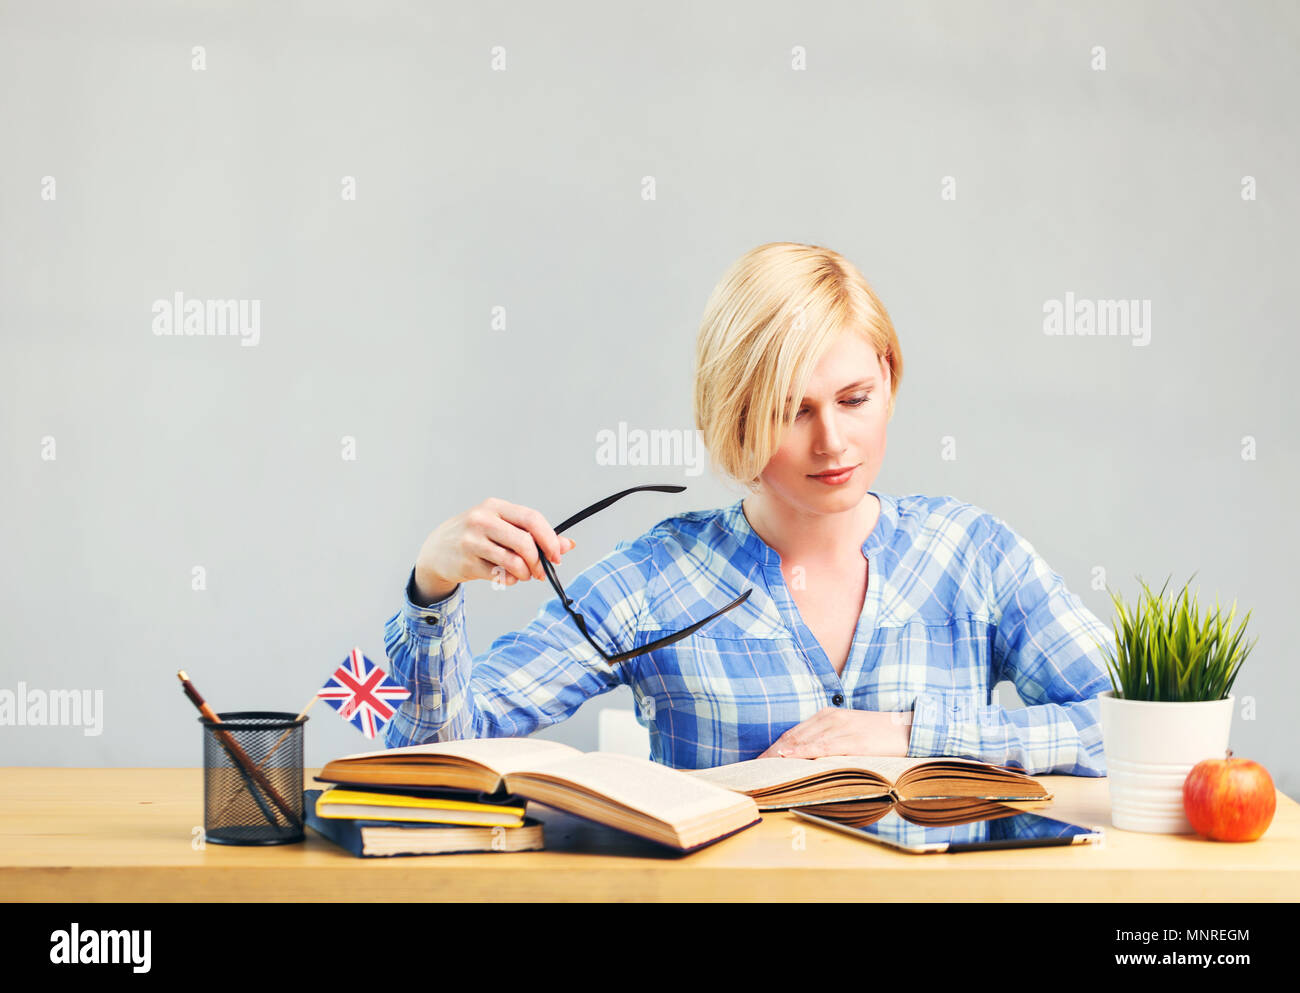 Smart female student, blonde woman holds eyeglasses in hand, studying English language on table with books, successful learning concept - Stock Image